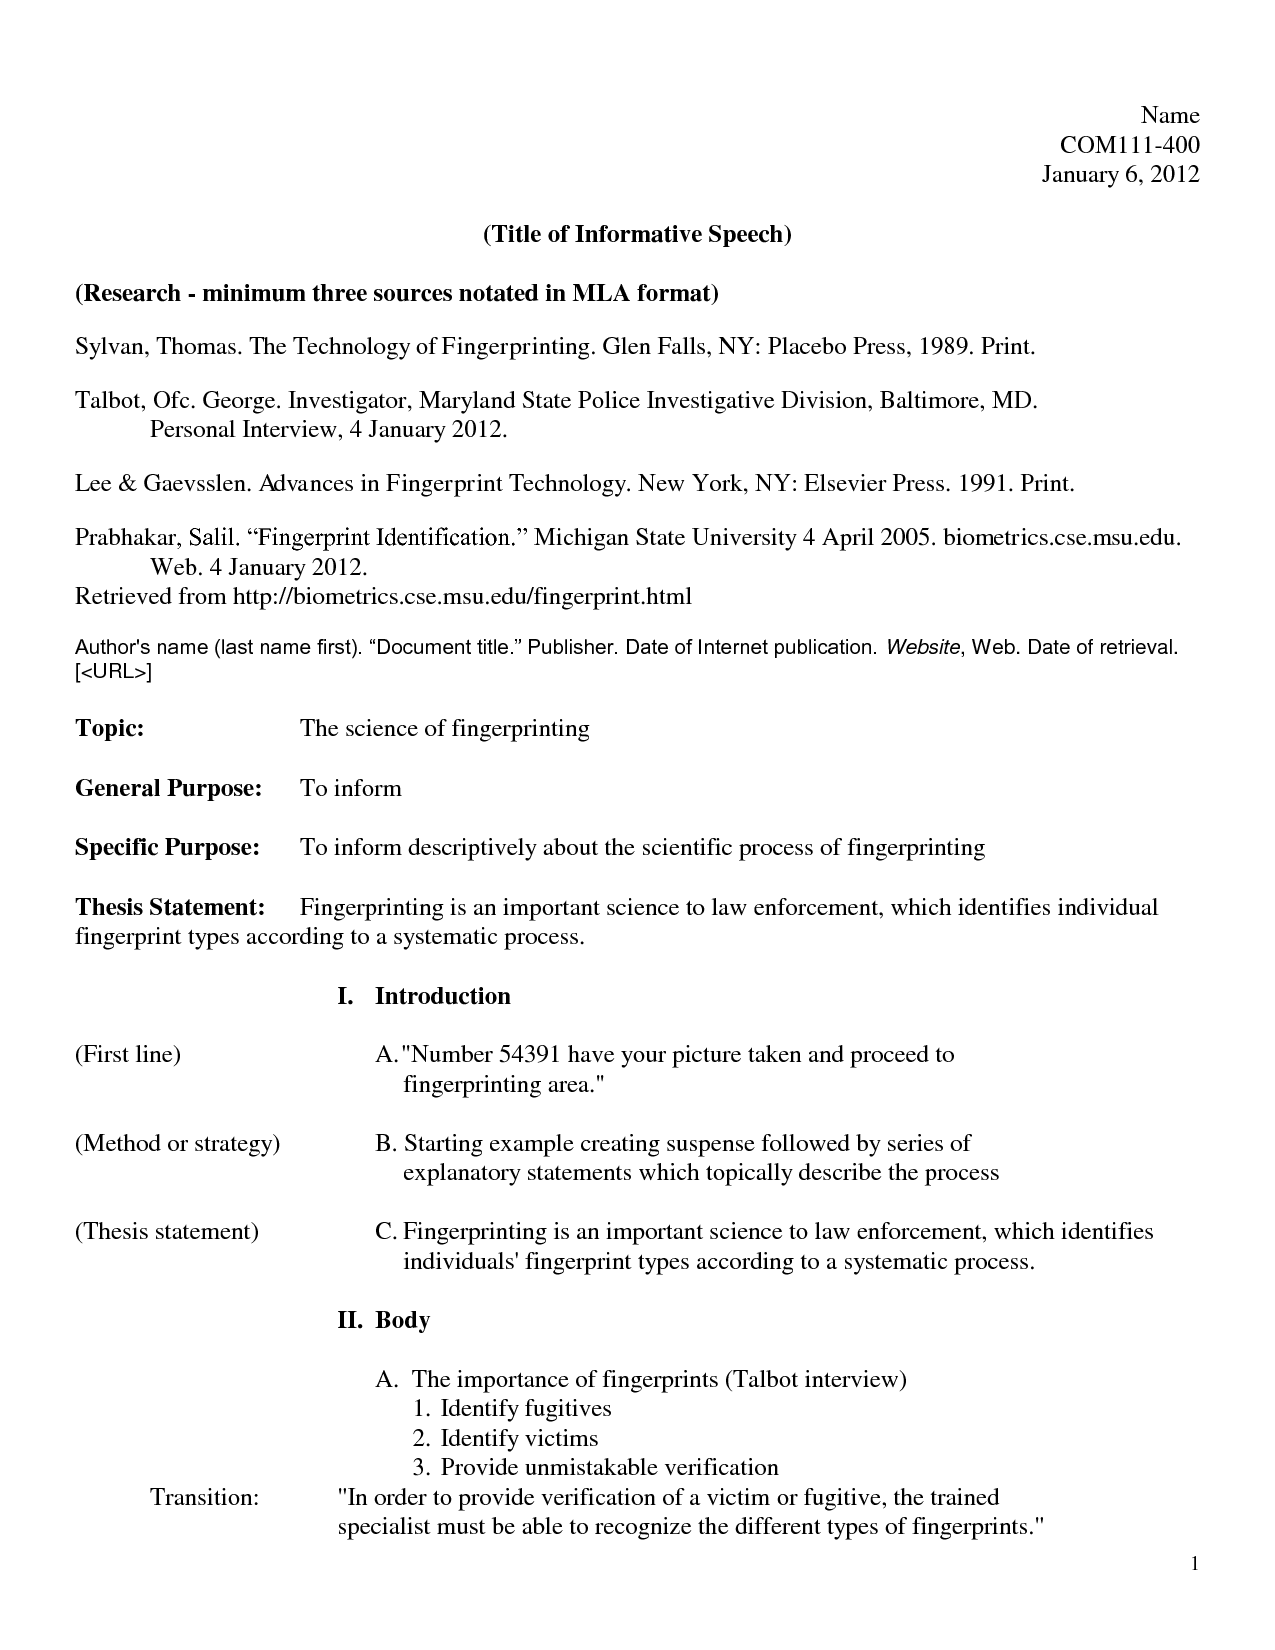 What Is Thesis Statement In Speech With Each Passing Day The